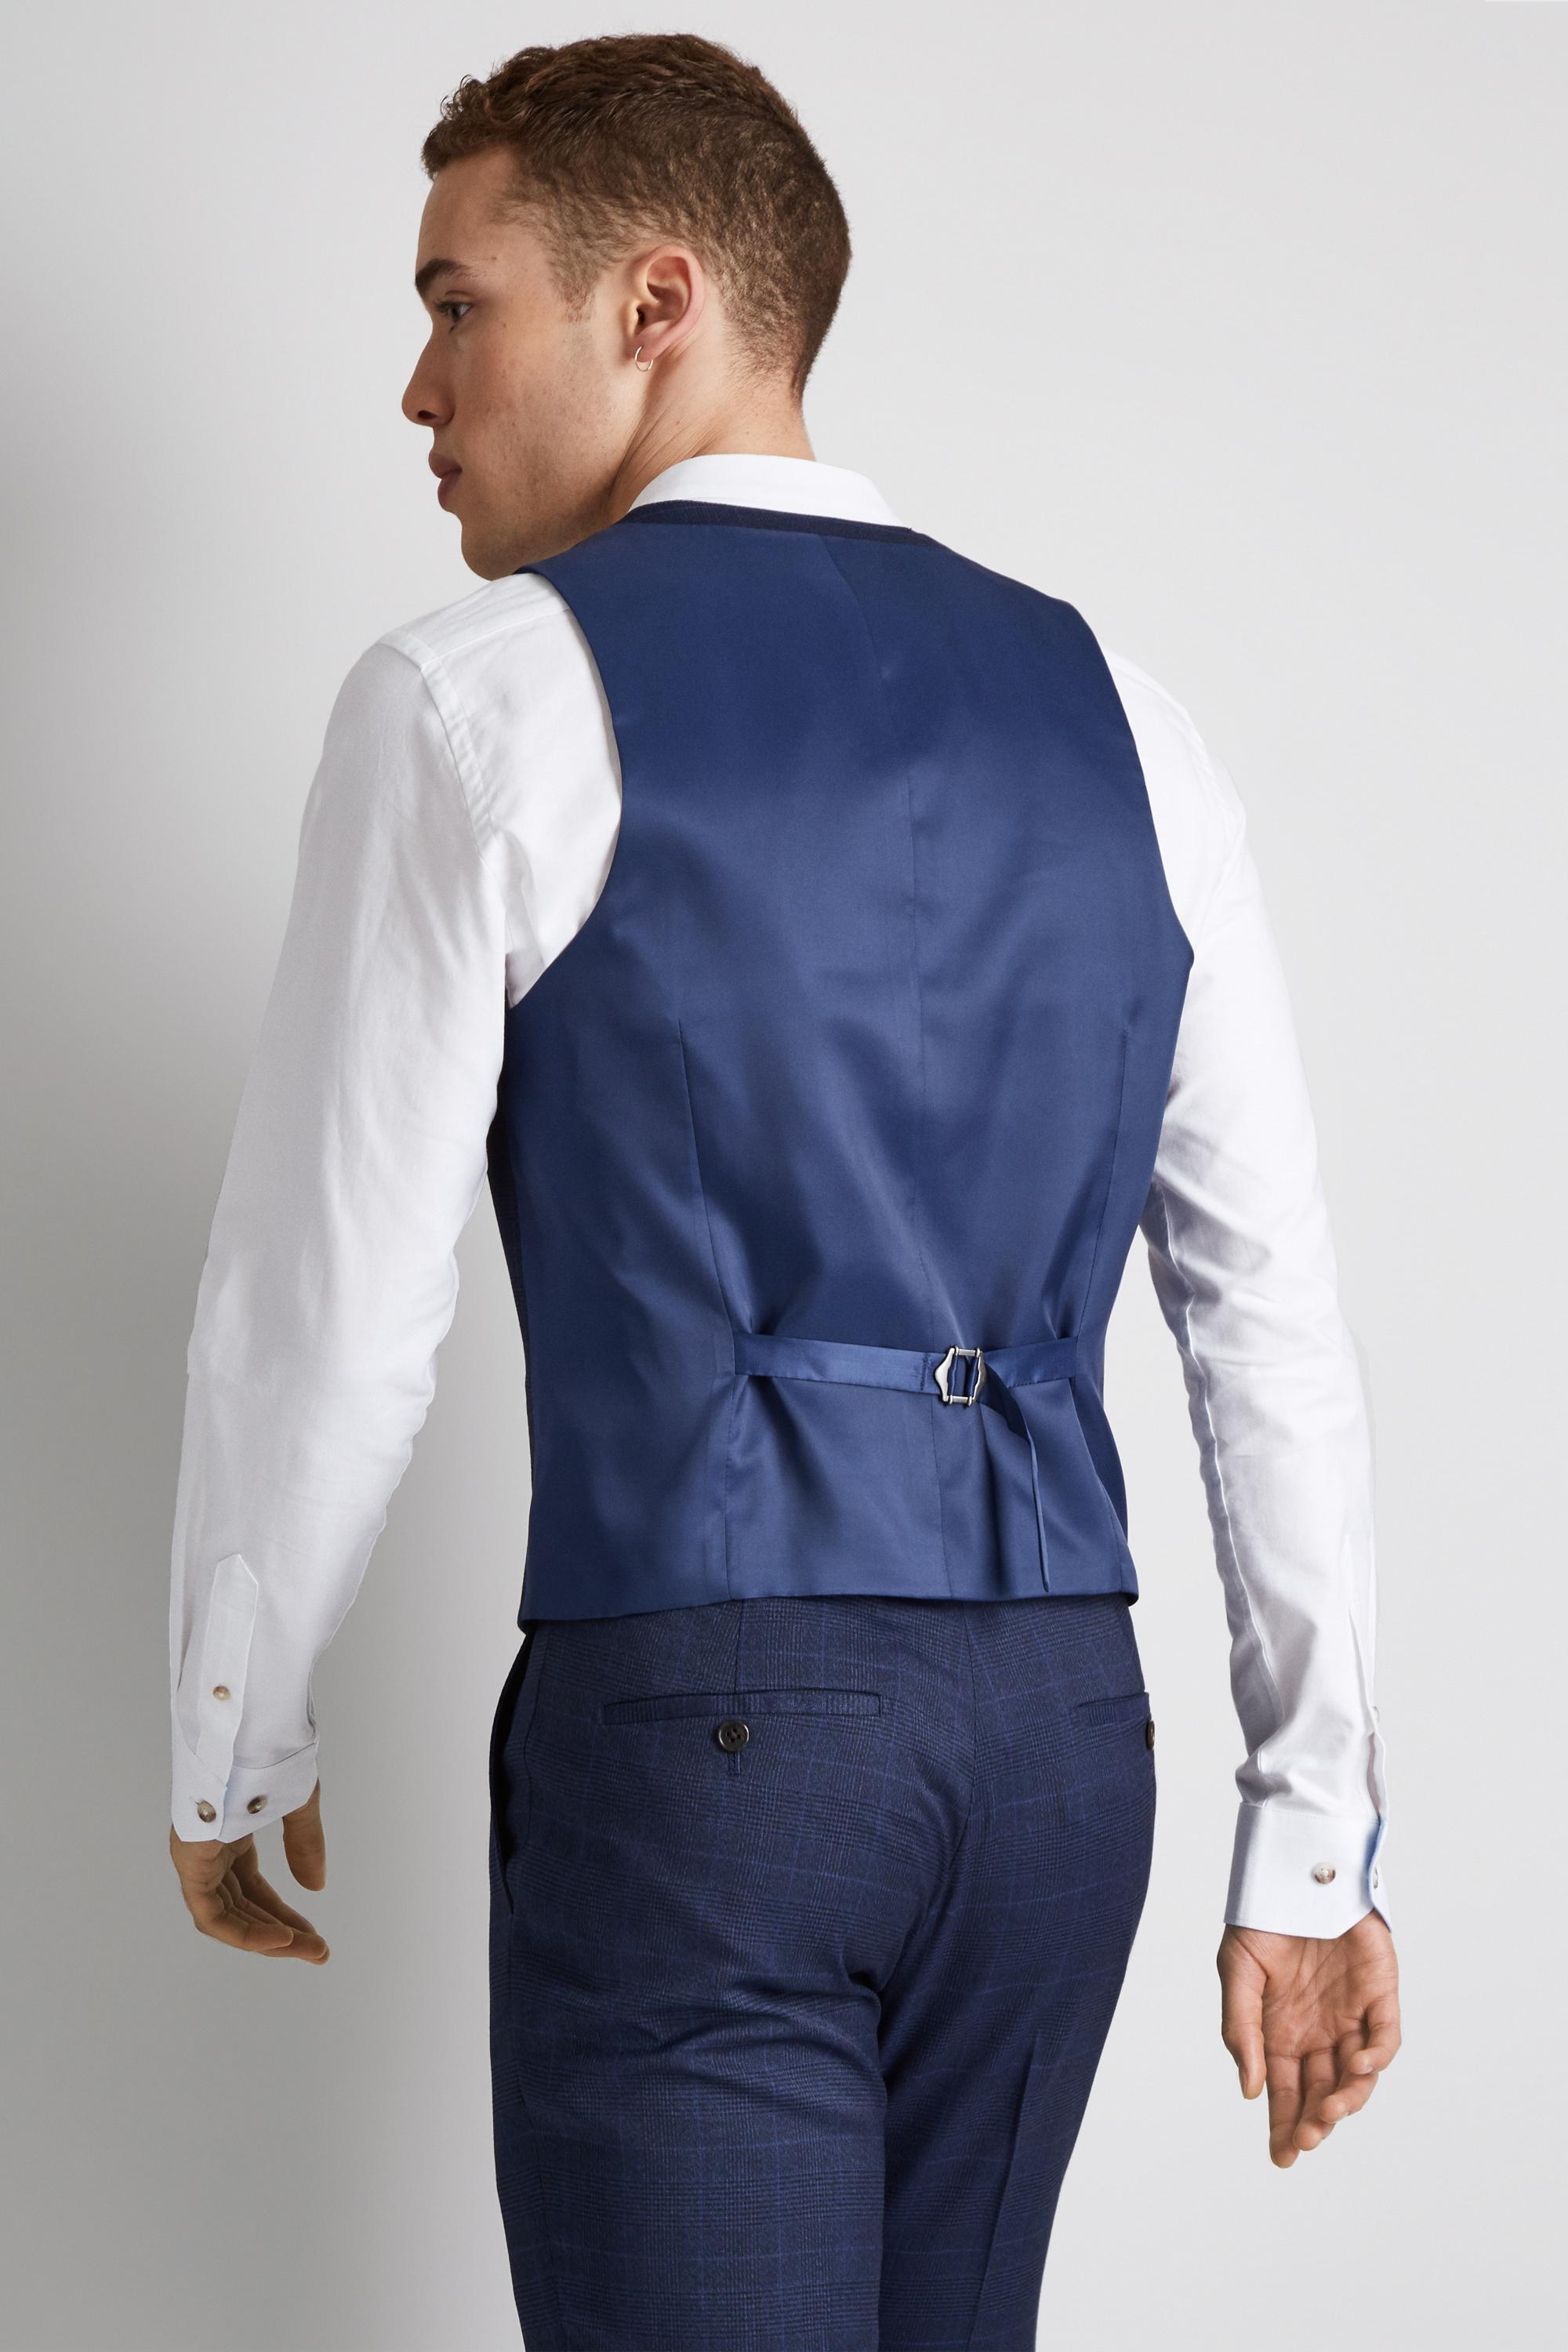 60db980bd9d059 Moss London - Skinny Fit Unstructured Blue Check Waistcoat for Men - Lyst.  View fullscreen